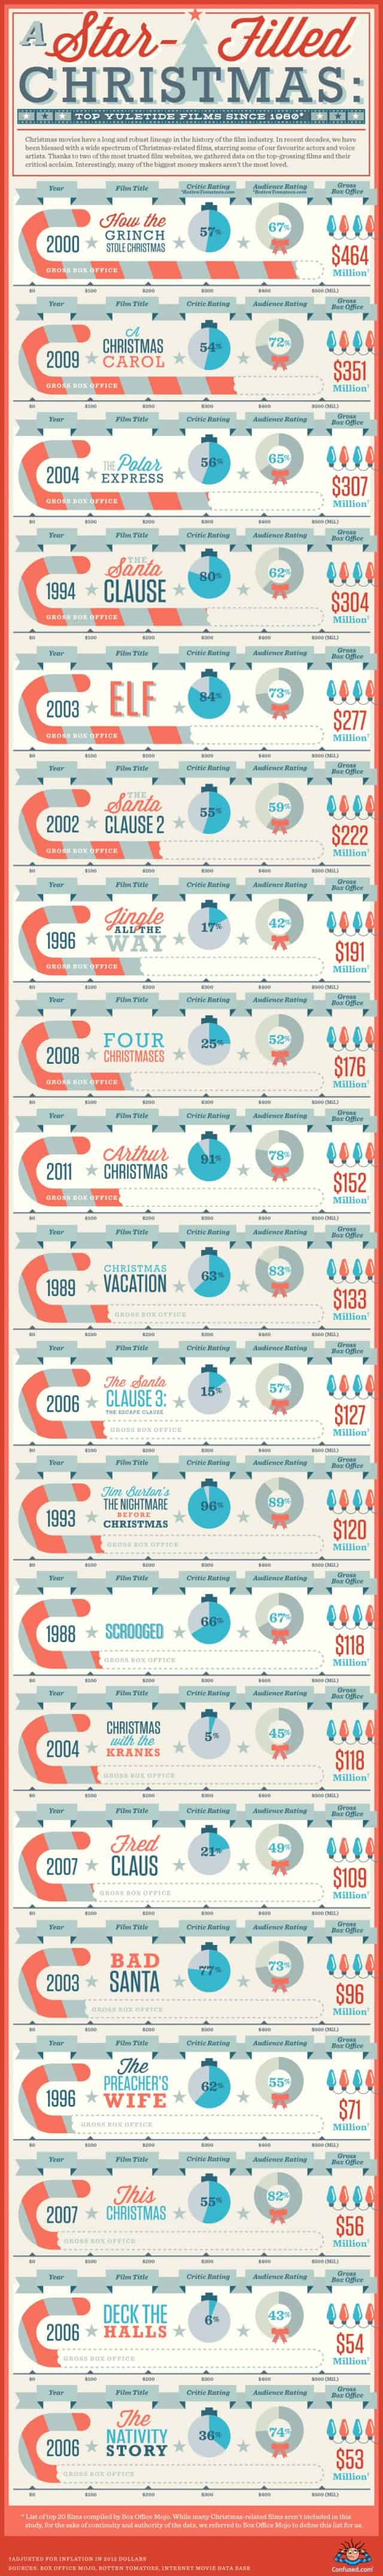 Christmas-Movie-Infographic-640x4303